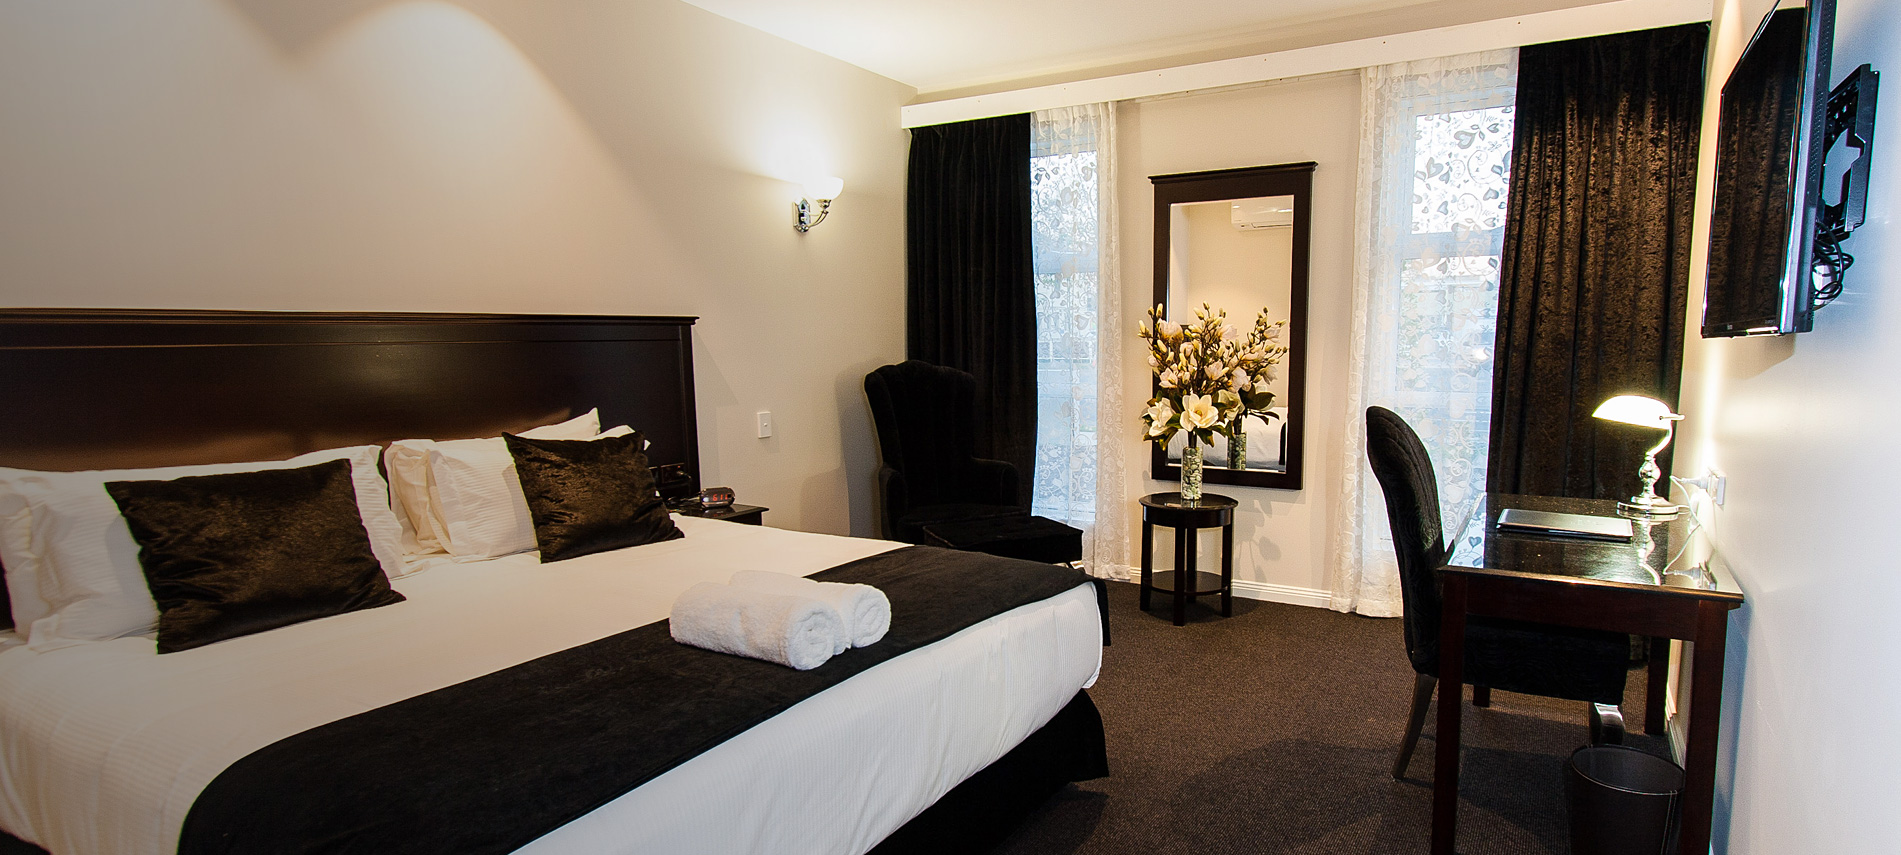 AccommodationBook Now! Rooms Startfrom $119